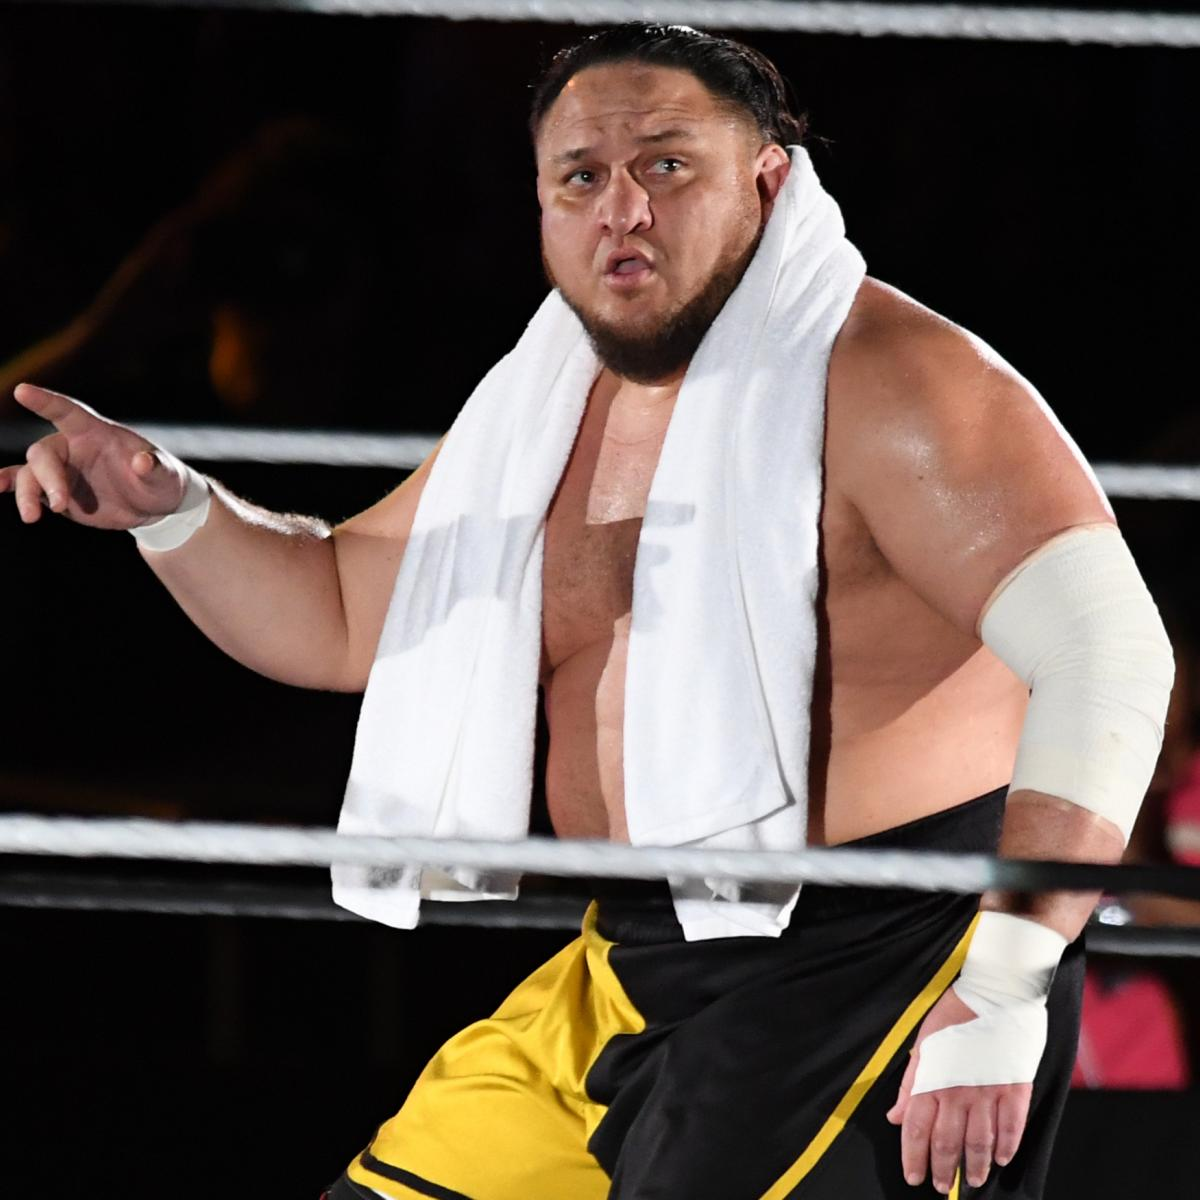 Report: WWE's Samoa Joe Injured After Hitting His Head During Commercial Shoot